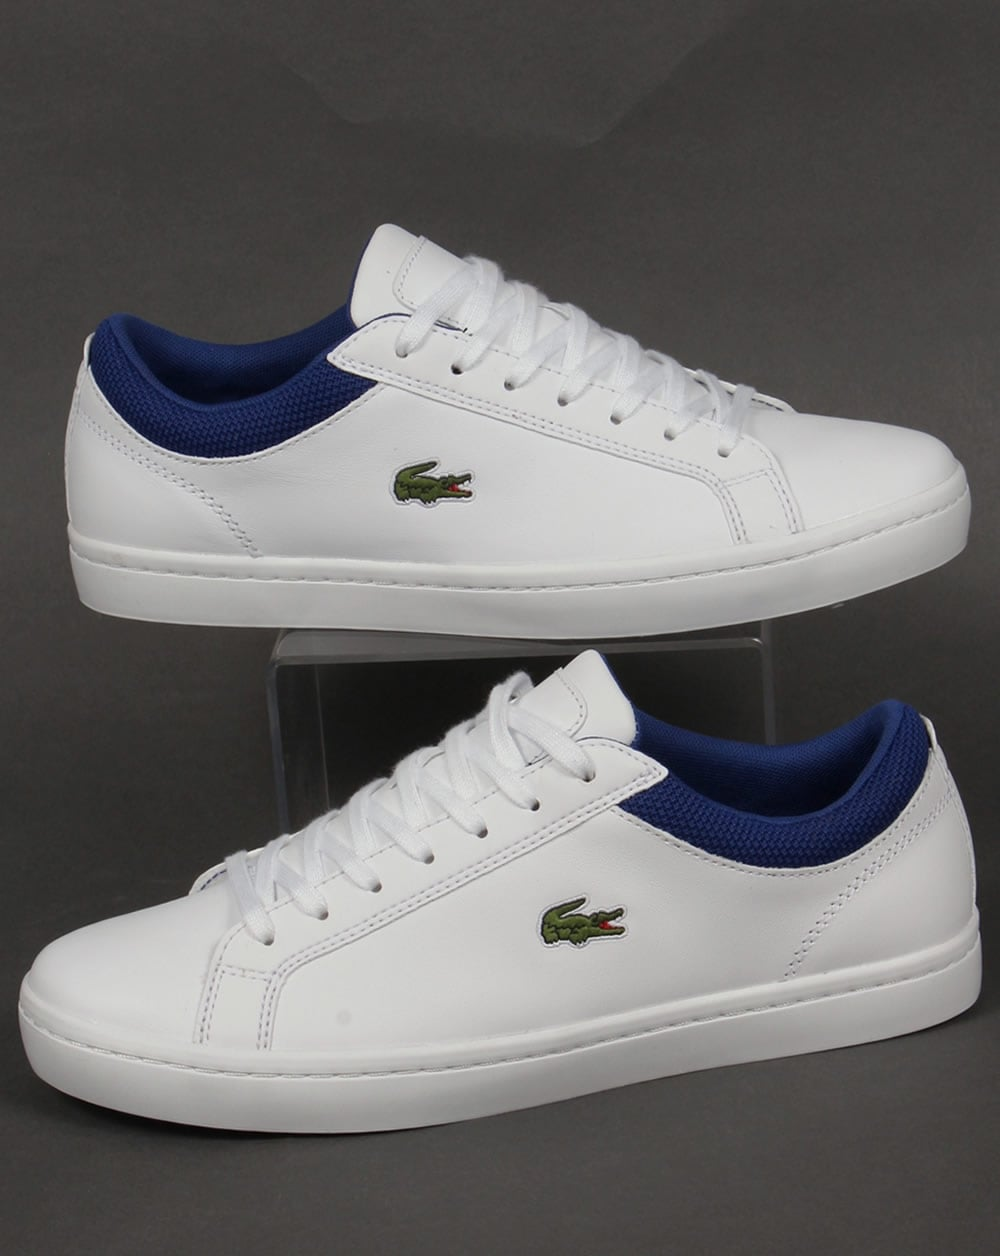 2a632f71ea496a Lacoste Lacoste Straightset Leather Trainers White Blue